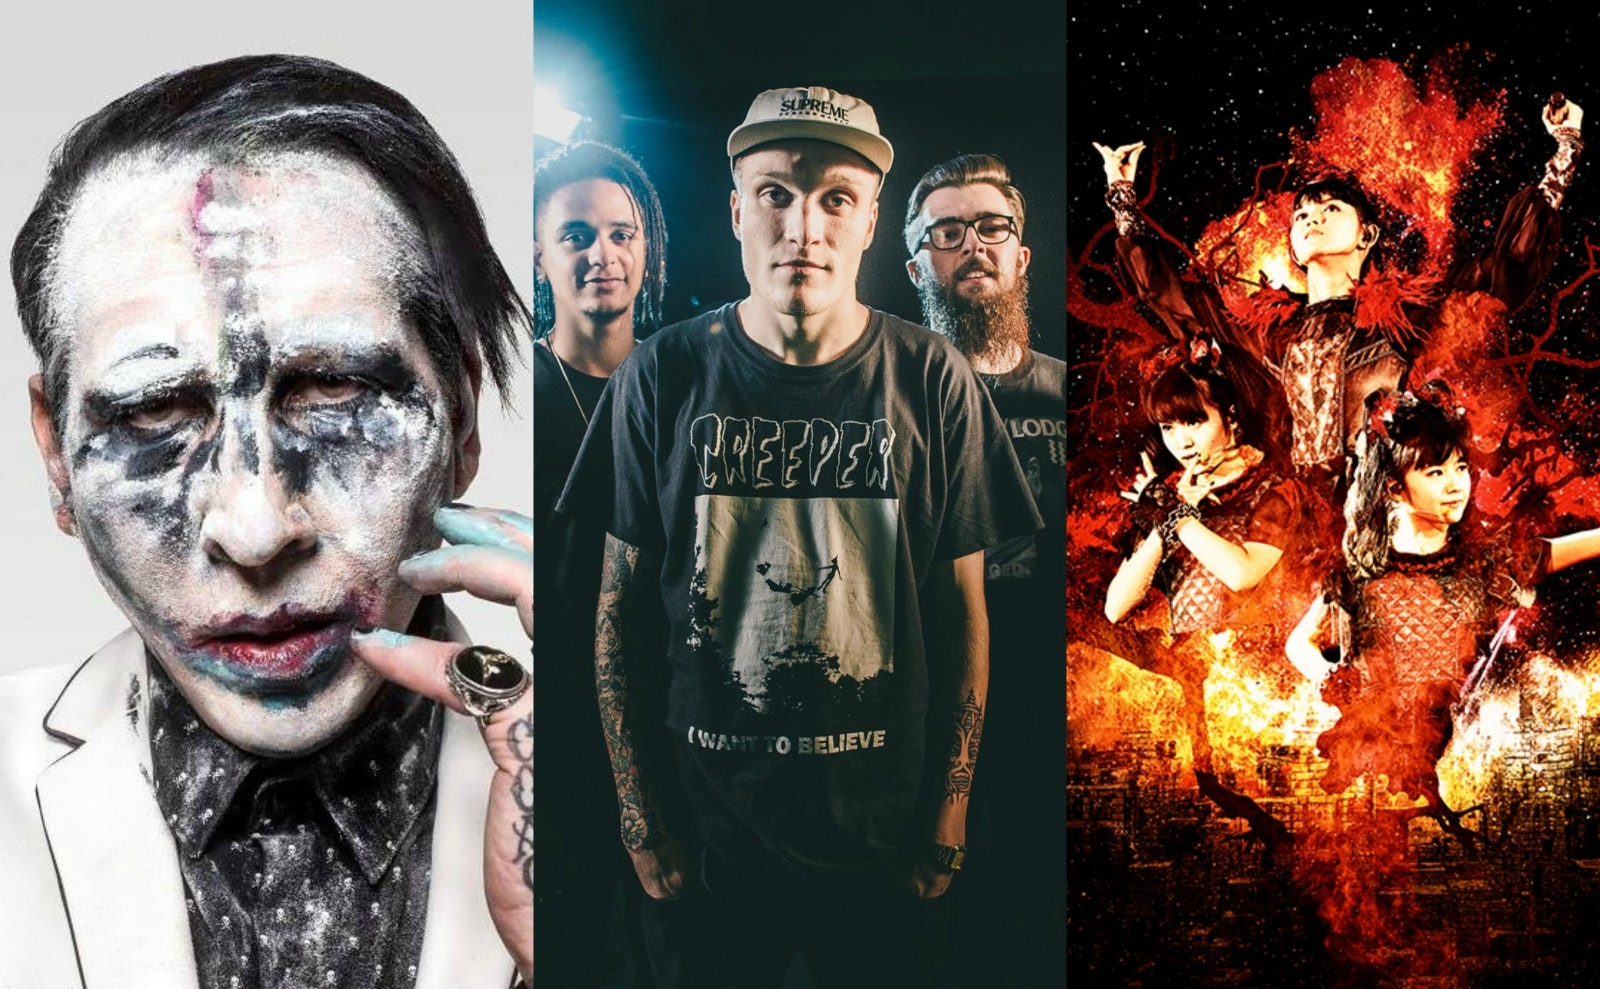 Marilyn Manson Rise Against And Neck Deep Have Been Announced For